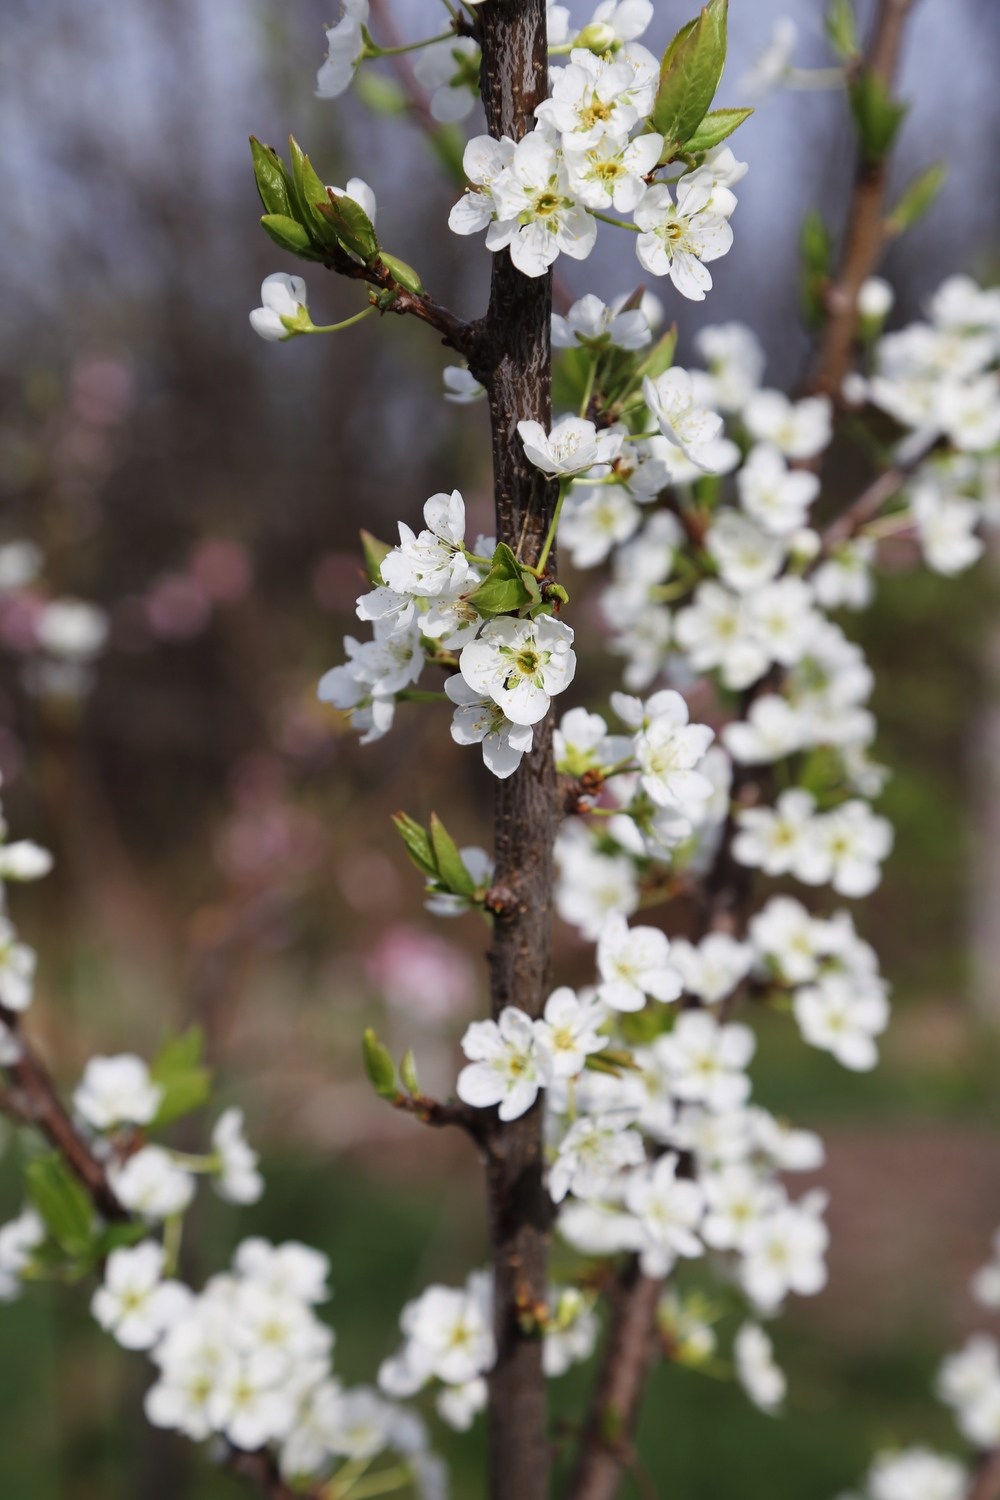 'Ruby Sweet' plum. Let's hope for at least a few this year!